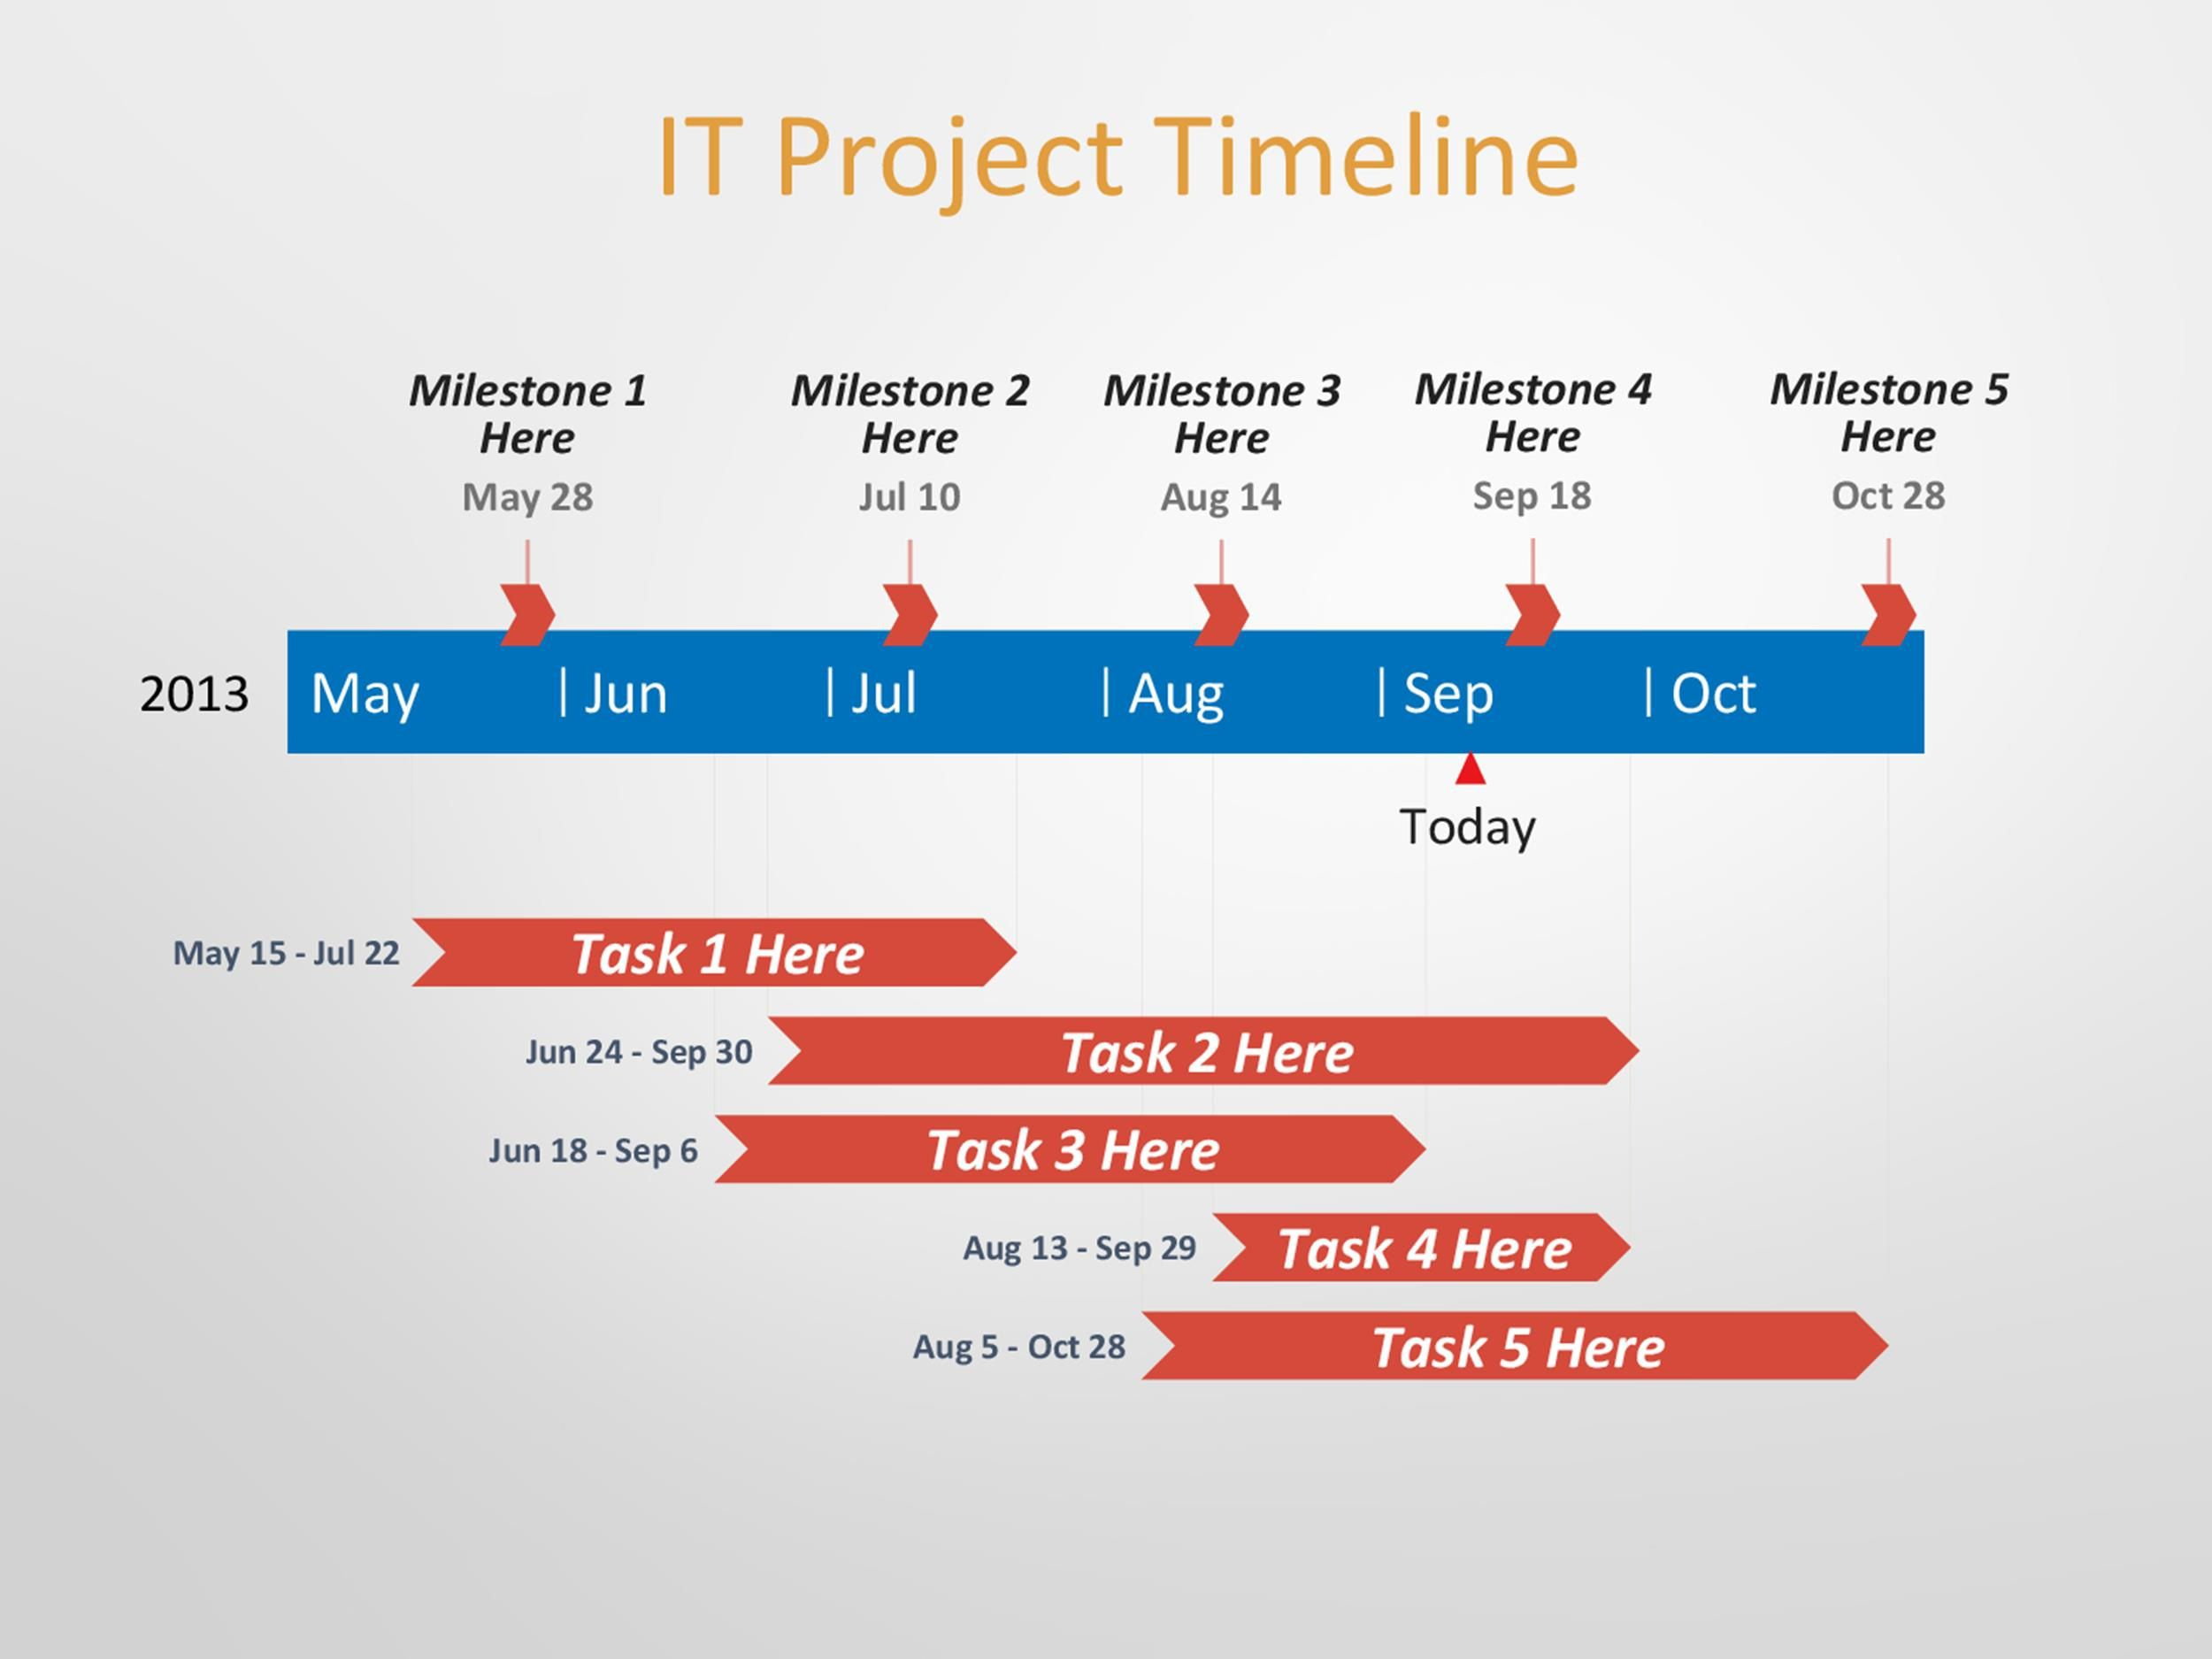 009 Magnificent Timeline Template For Word 2016 Concept Full